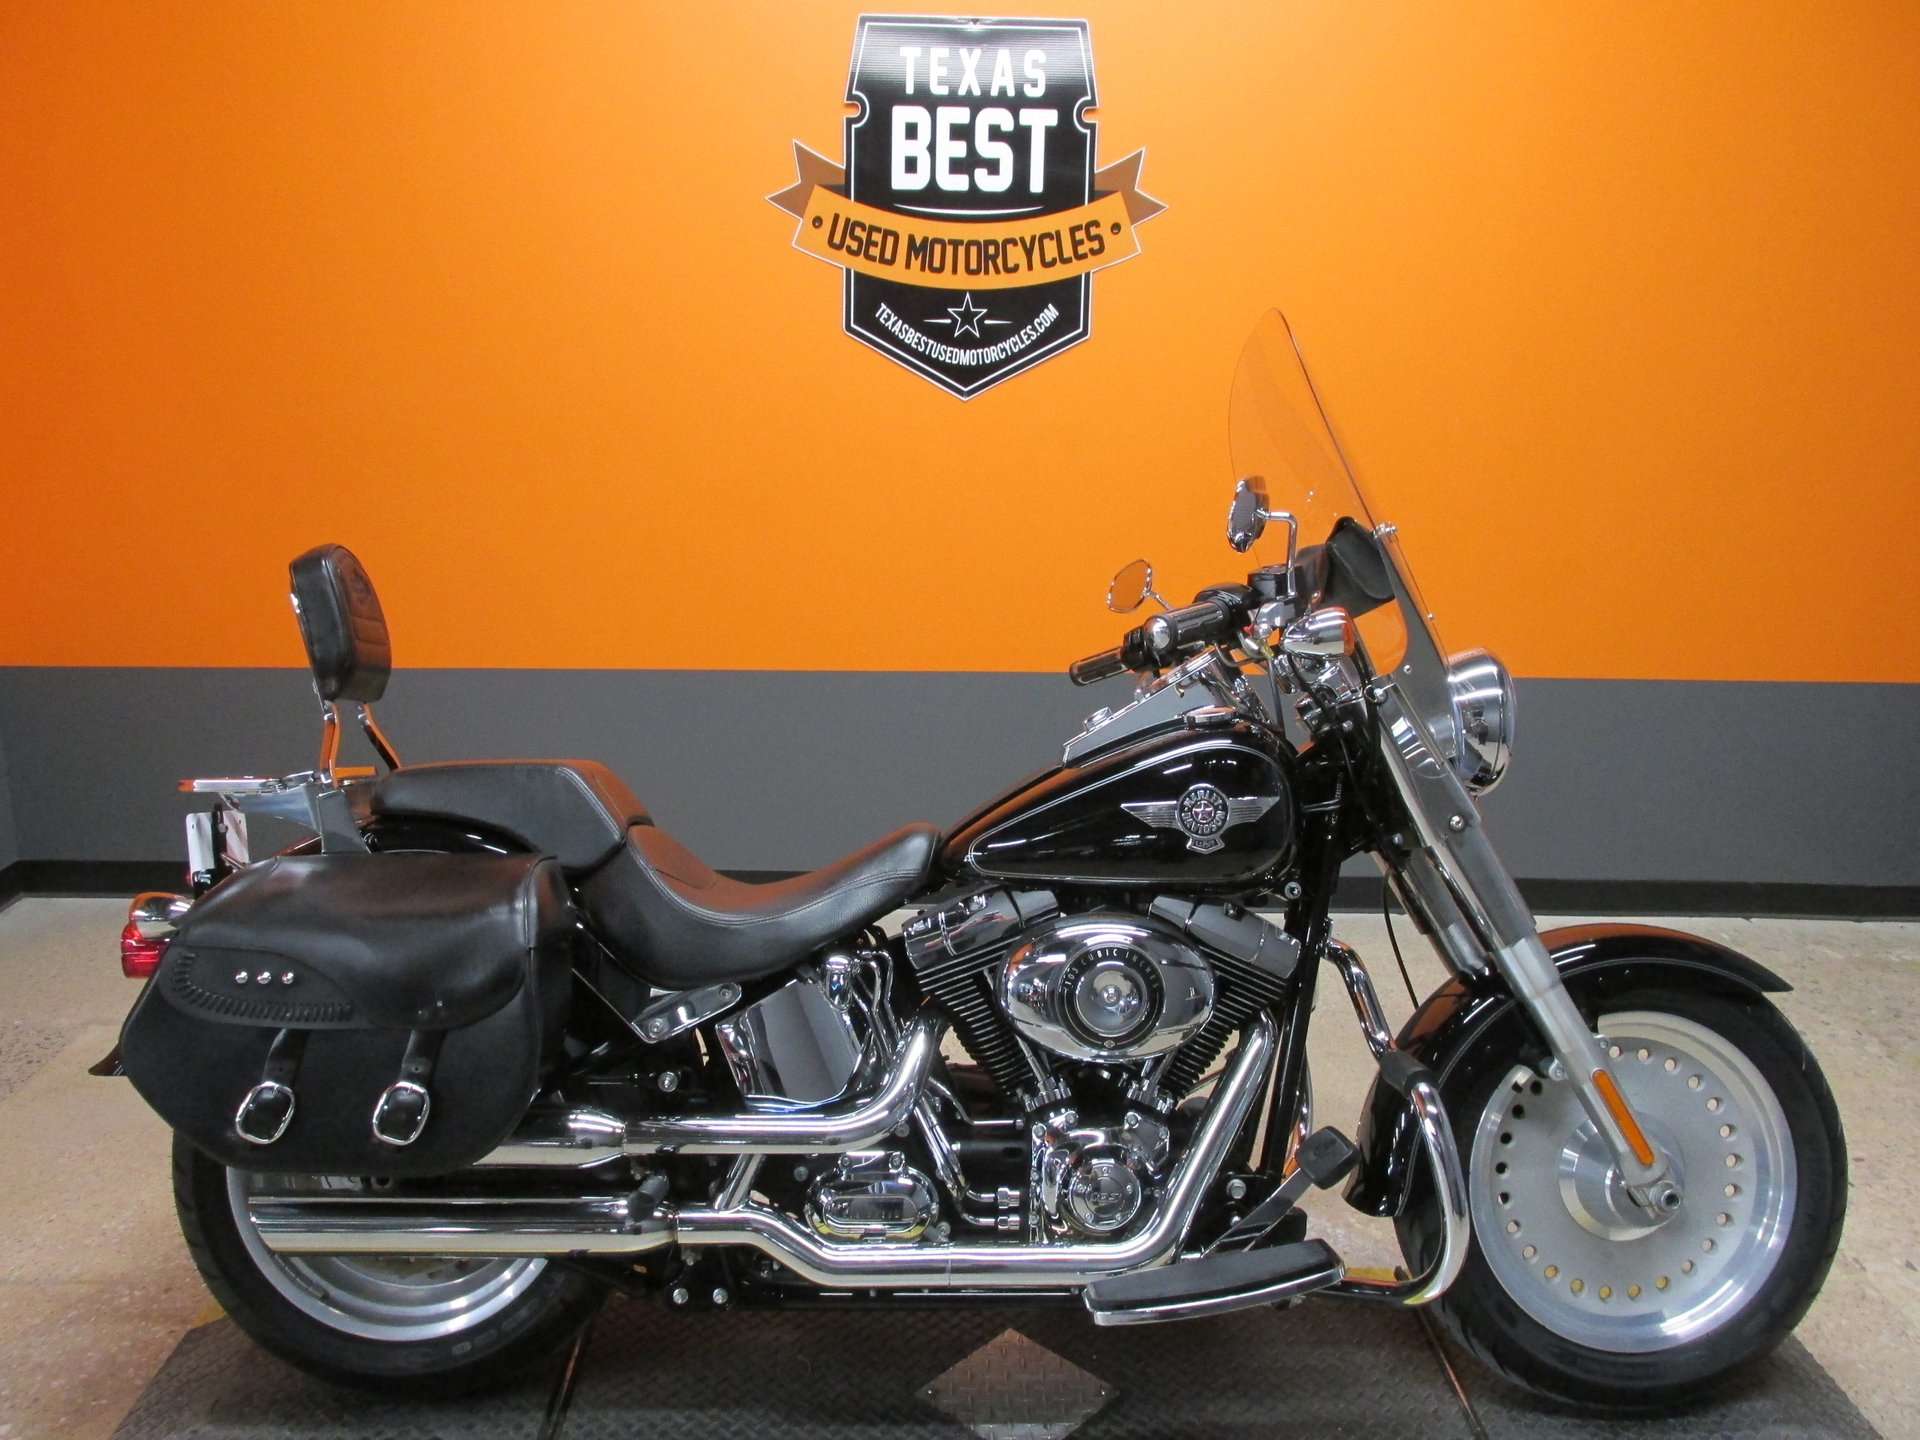 2012 harley davidson softail fat boy flstf